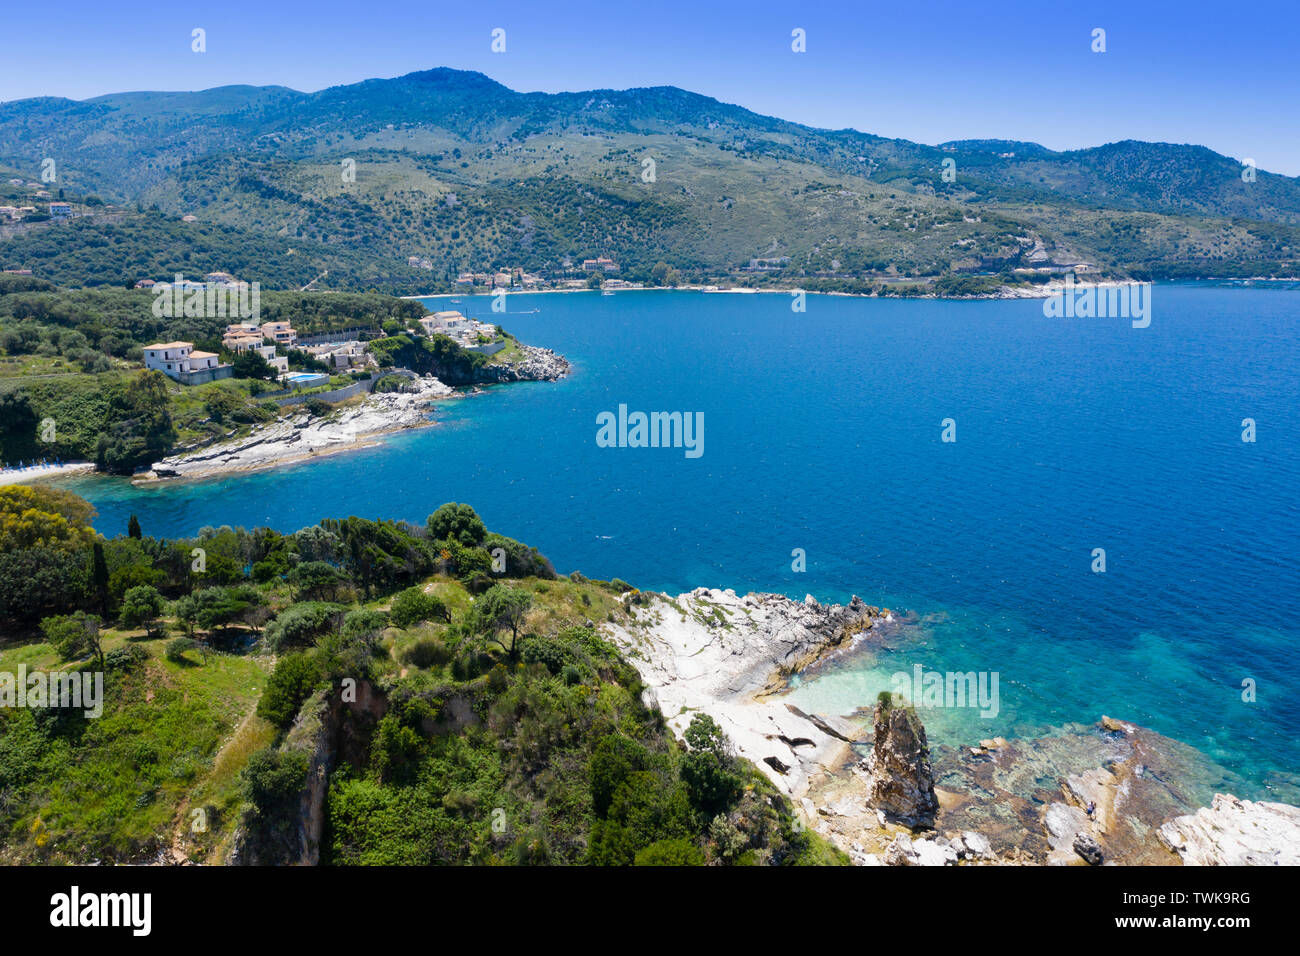 Aerial view of Cassiopi beach,beautiful bay and deep blue sea with mountains in the background - Stock Image